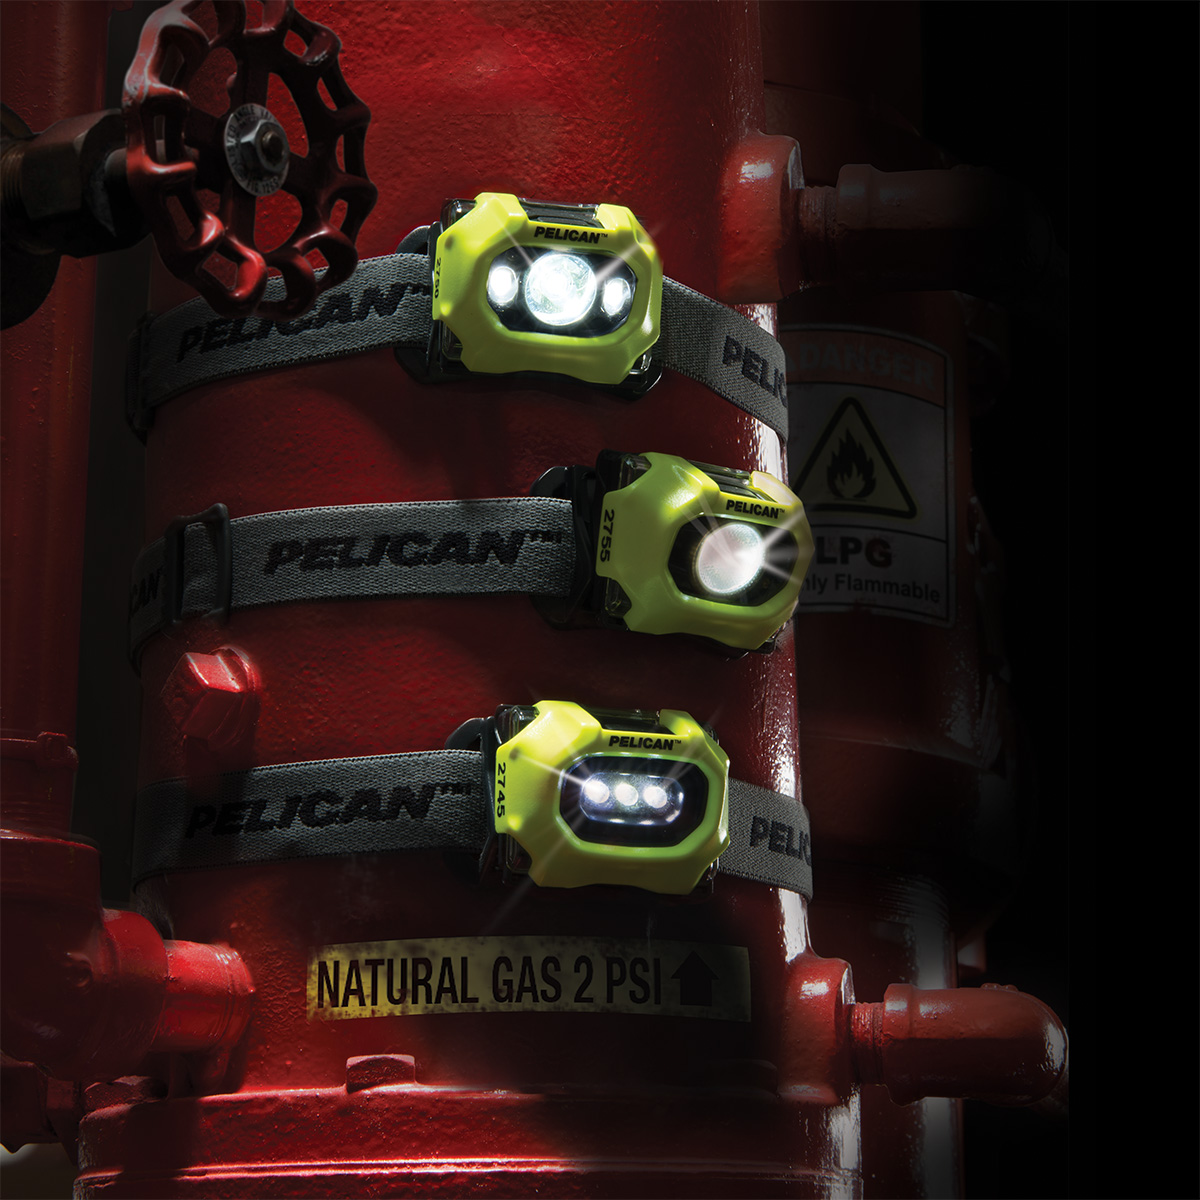 pelican peli products safety rated approval led head light